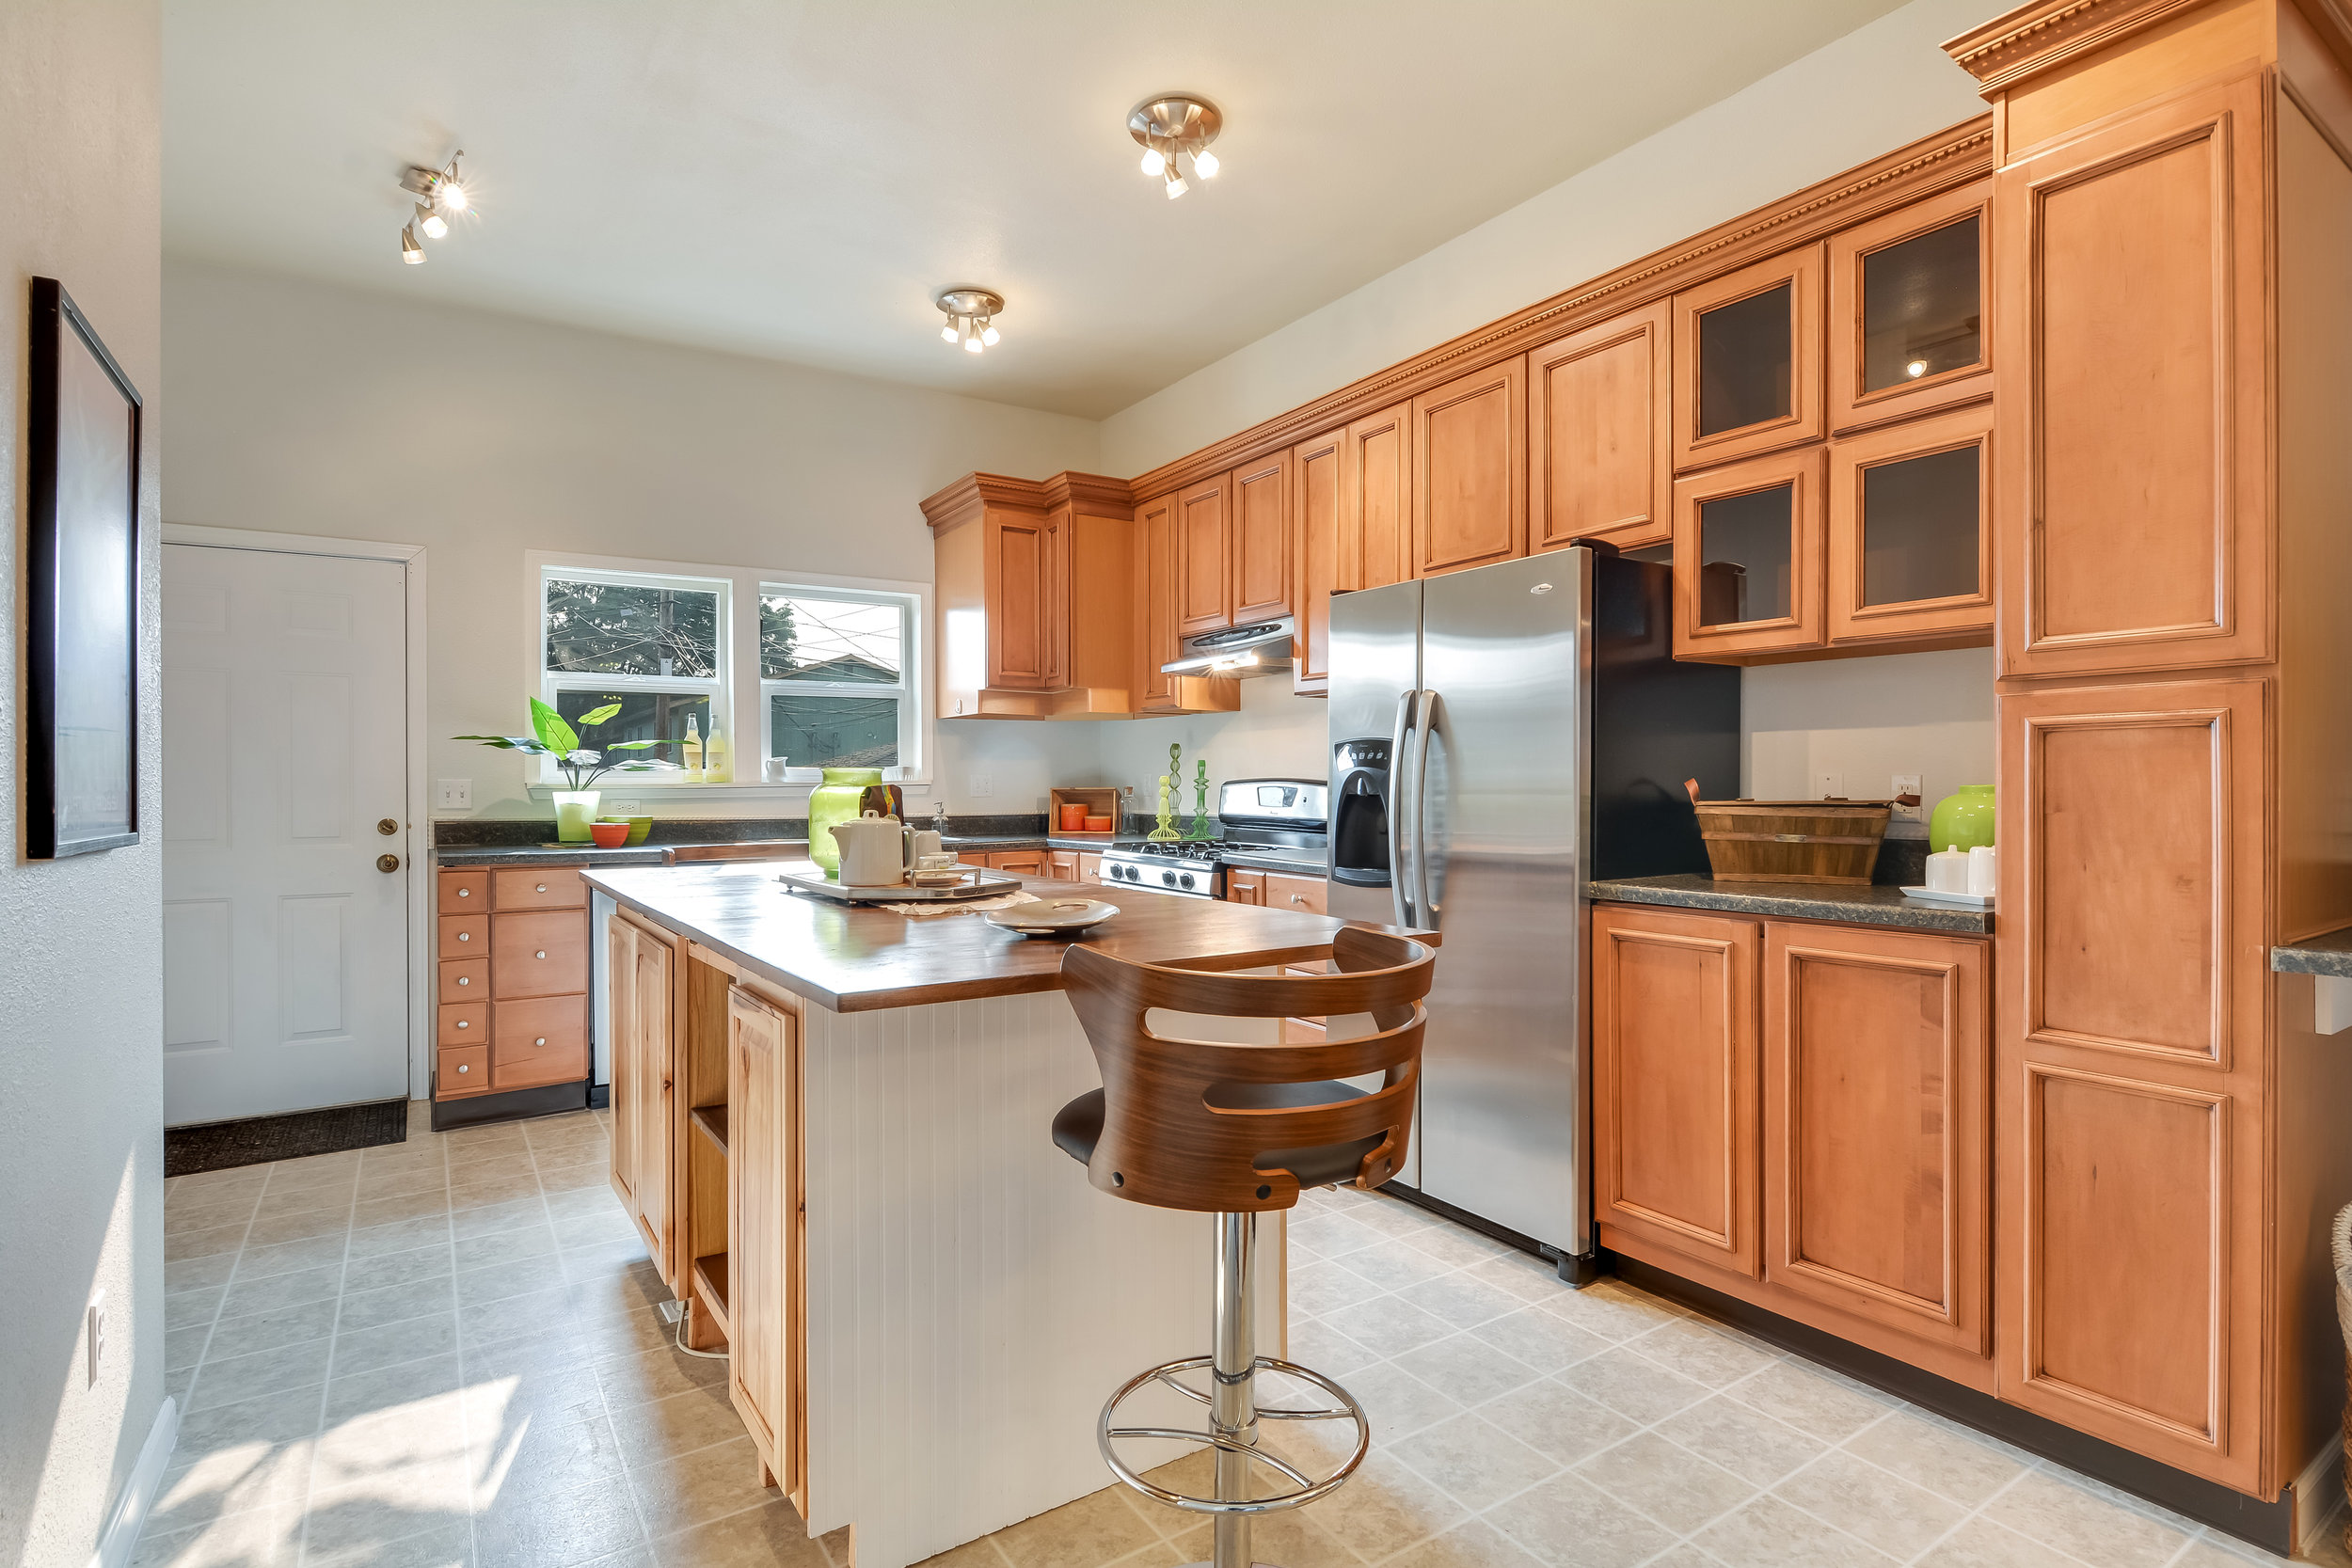 Updated kitchen includes this custom island with cabinets made of acacia wood. The top of the island is reclaimed from an artist's office in Portland, and there's even a mini fridge tucked in there!